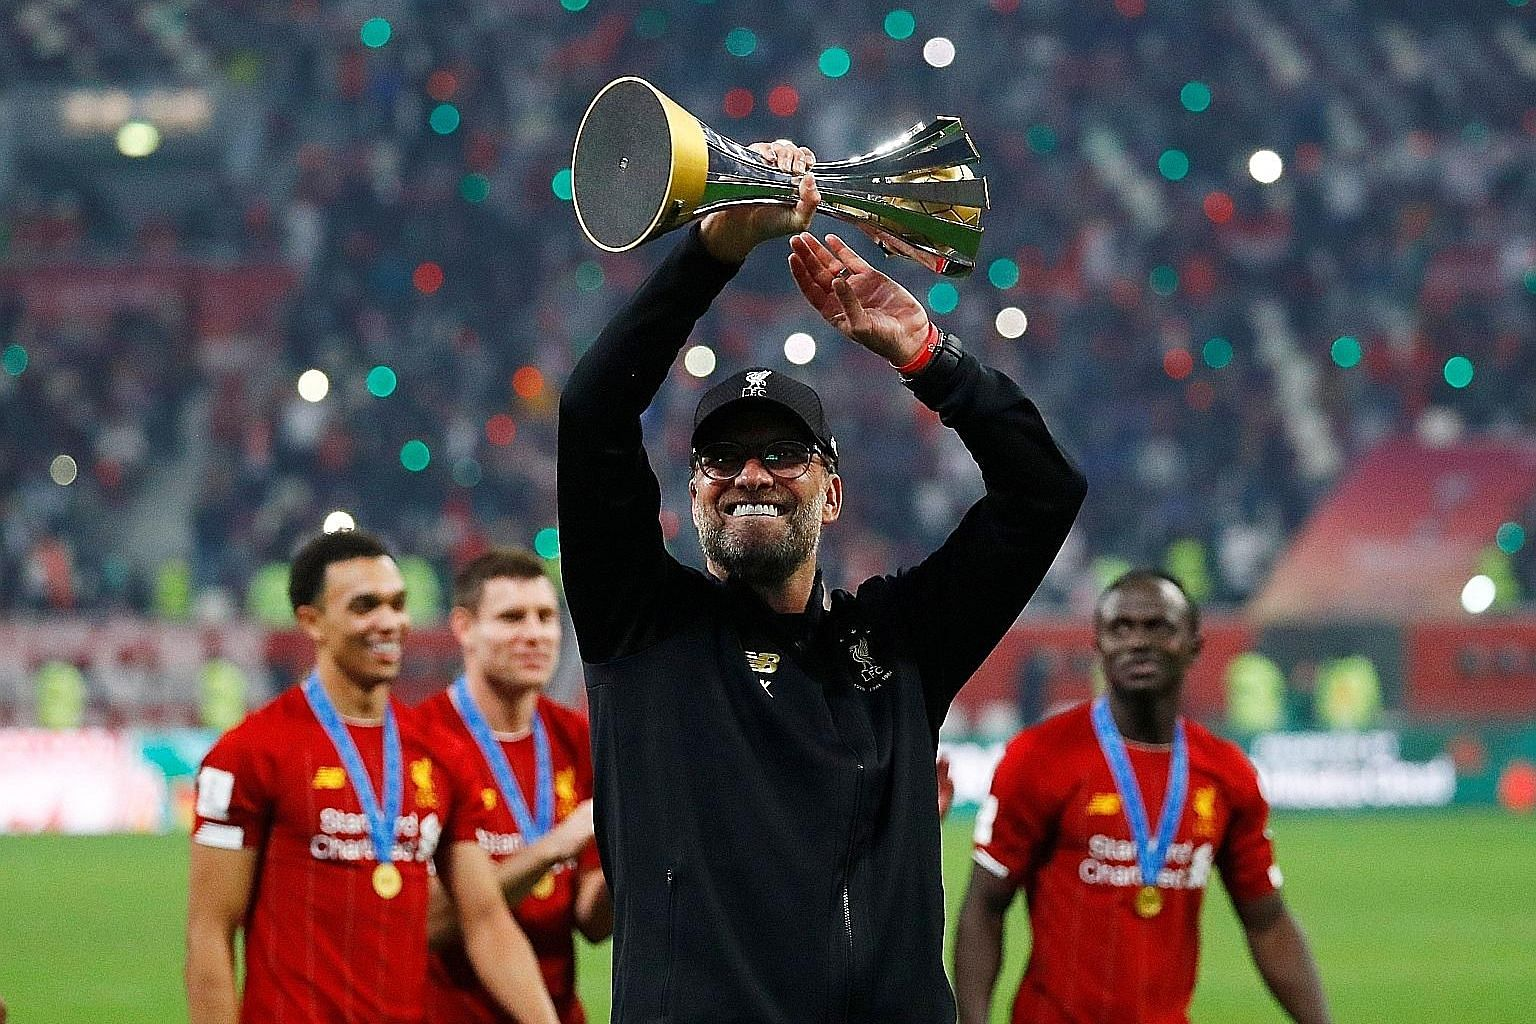 Liverpool boss Jurgen Klopp celebrating after winning the Club World Cup on Saturday. His team have a 10-point lead over Leicester in the Premier League ahead of their Boxing Day clash. PHOTO: REUTERS